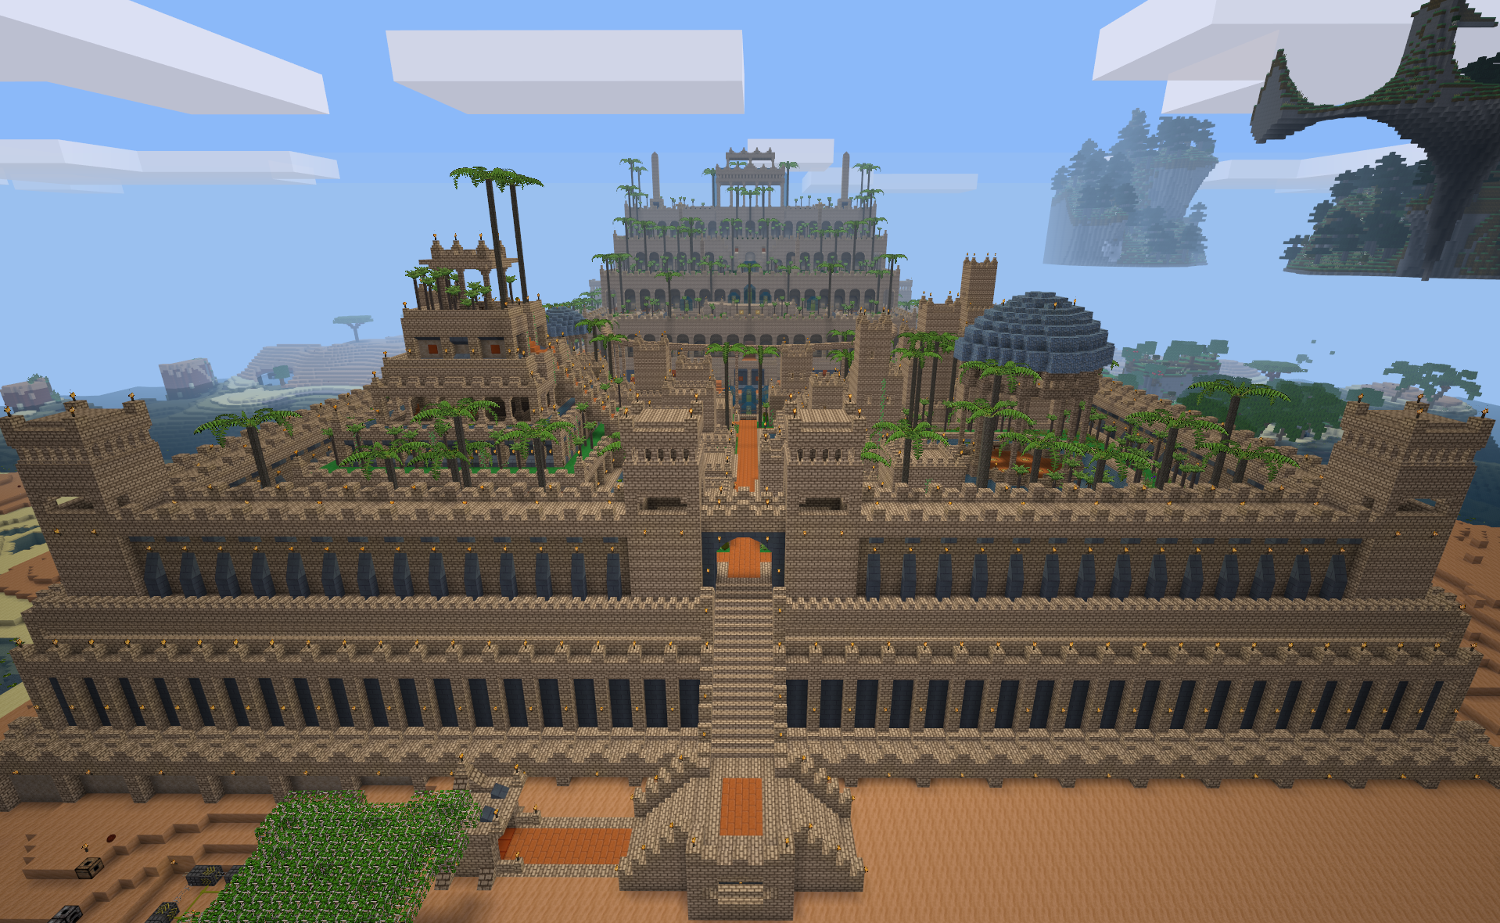 Screenshot from Minetest showing a massive palace-like fortress filled with palm trees